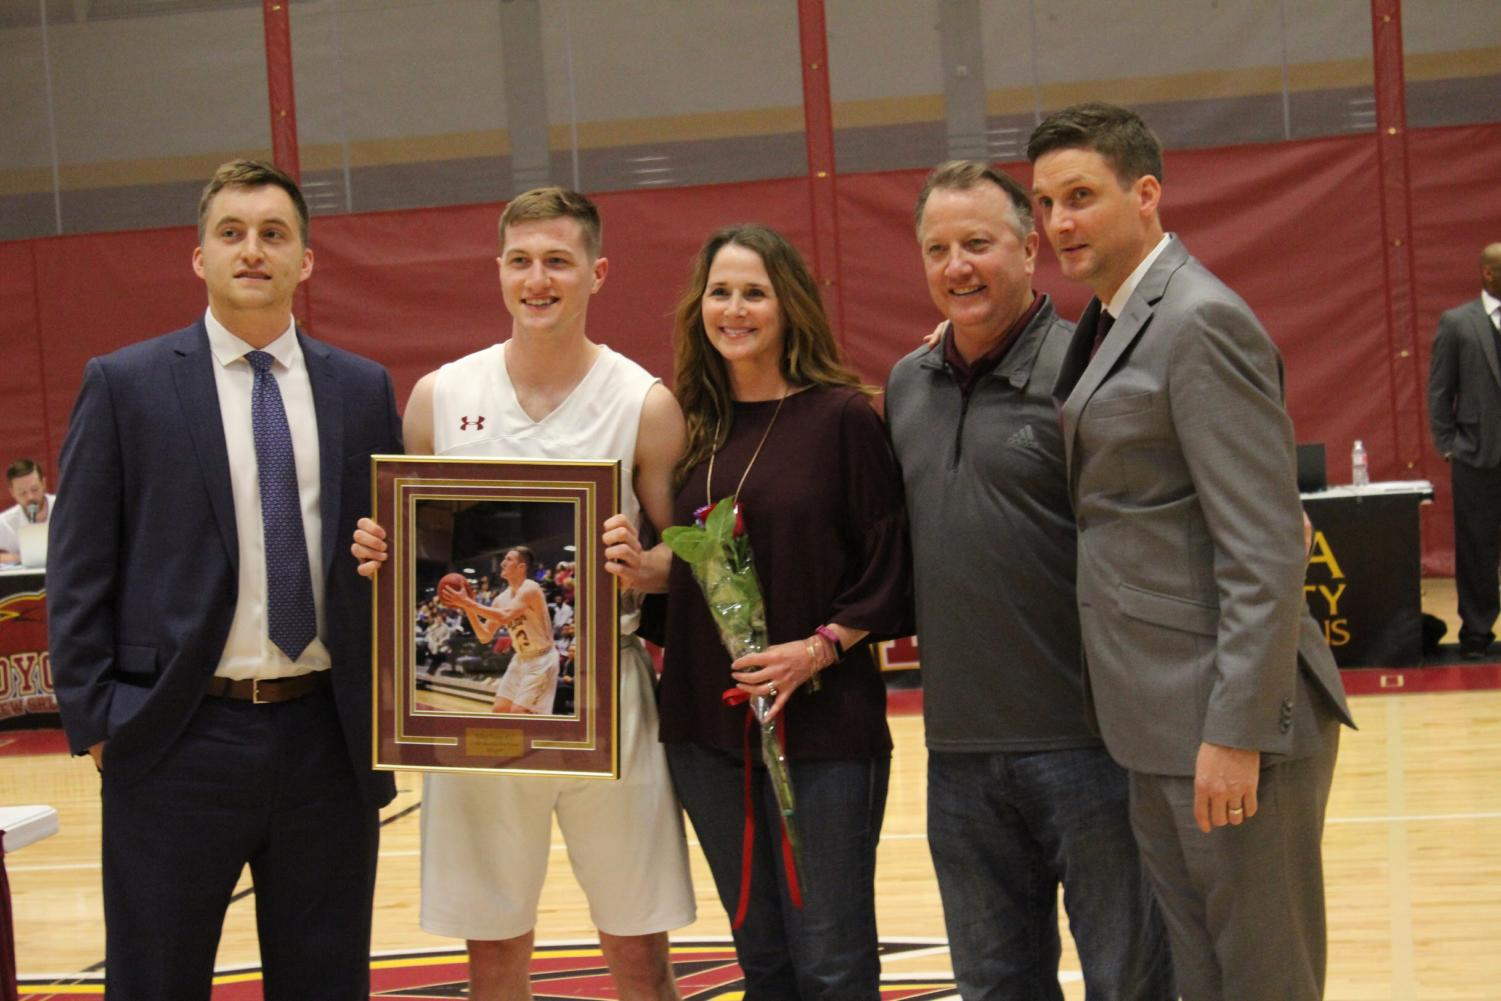 Finance+senior+Ethan+Turner+%2833%29+joins+his+family+and+the+coaching+staff+for+a+photo.